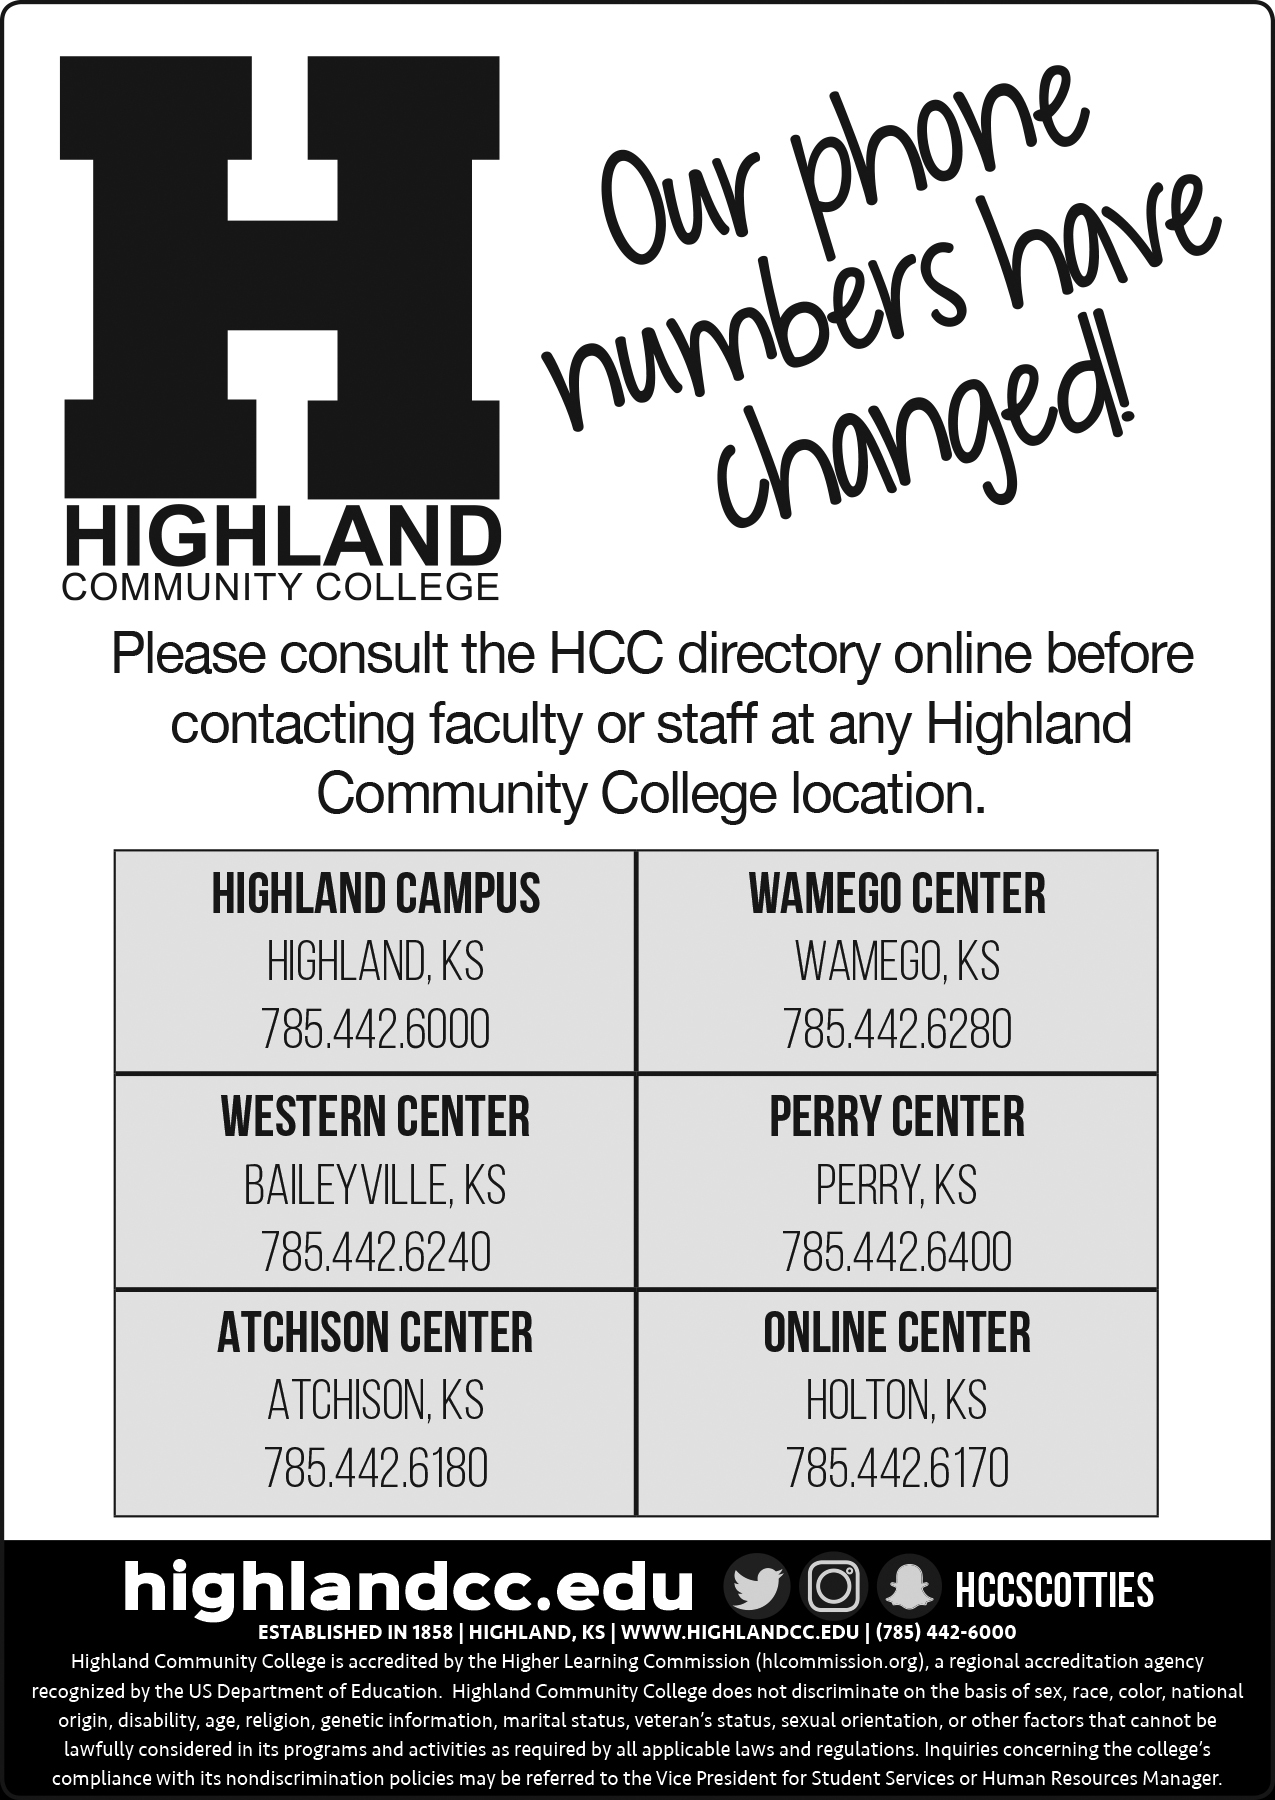 Phone Number Change at All Highland Community College Locations